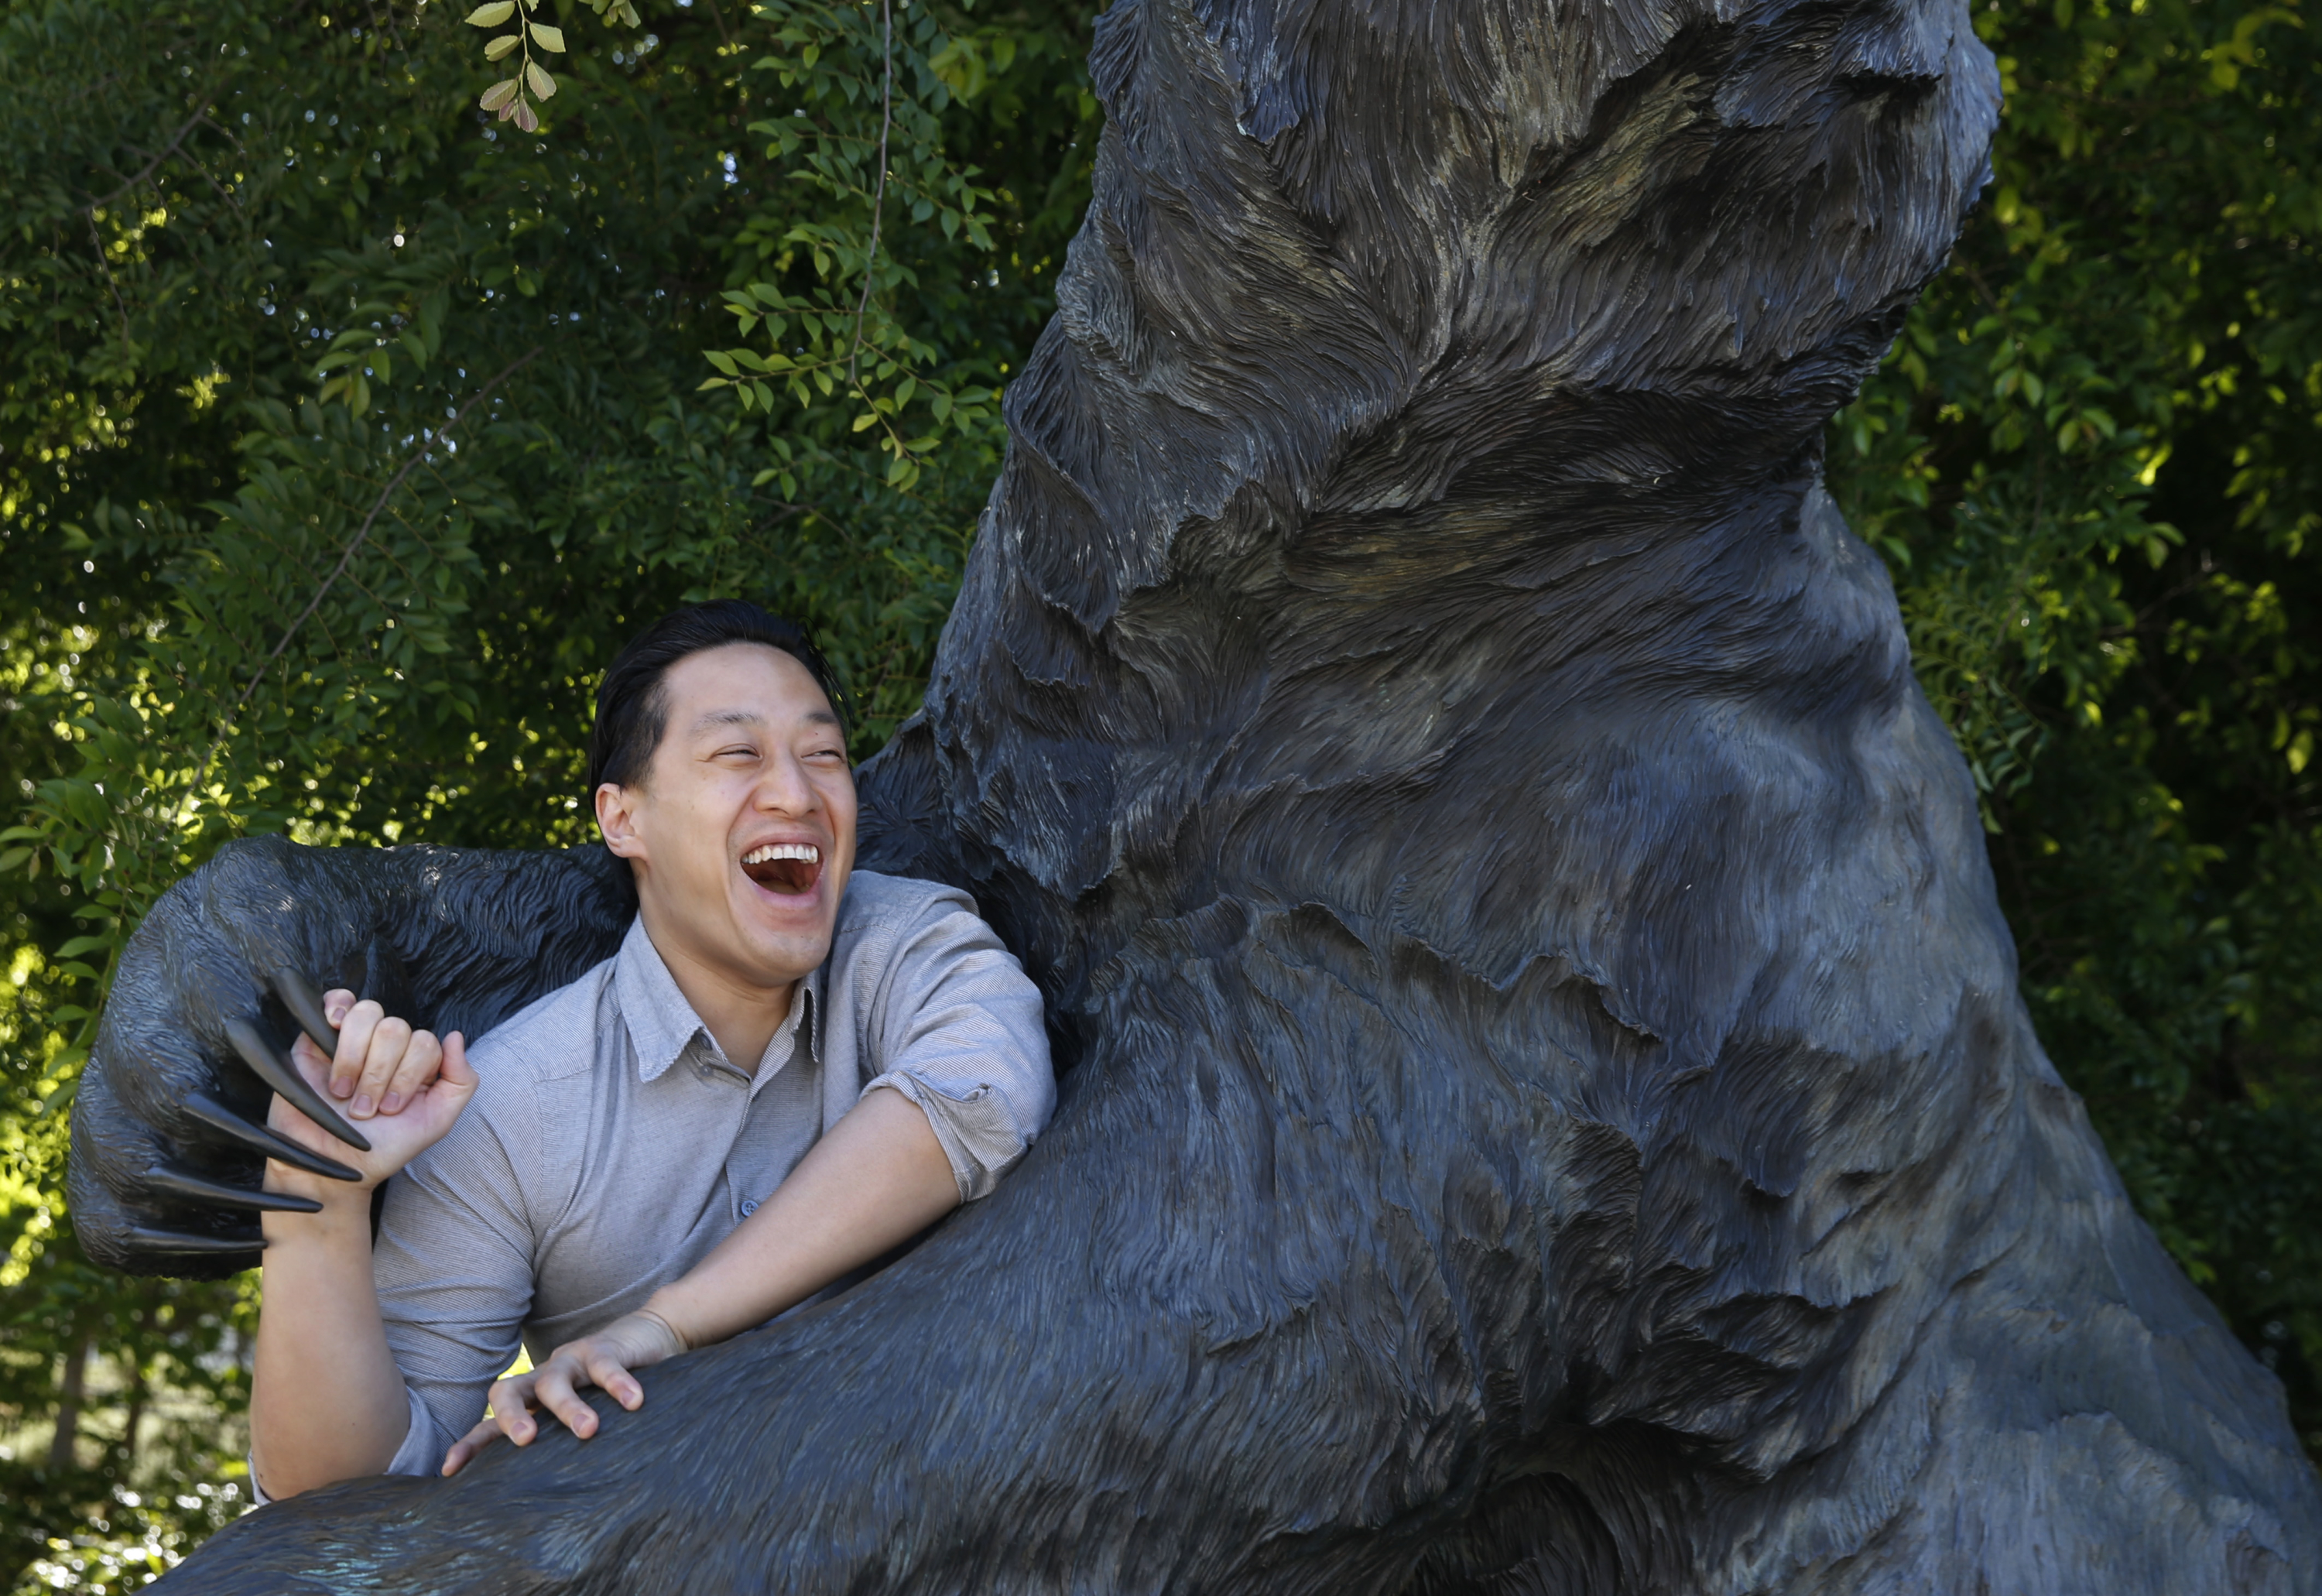 Bay Area Creator Of We Bare Bears Marks End Of Series With New Movie Datebook